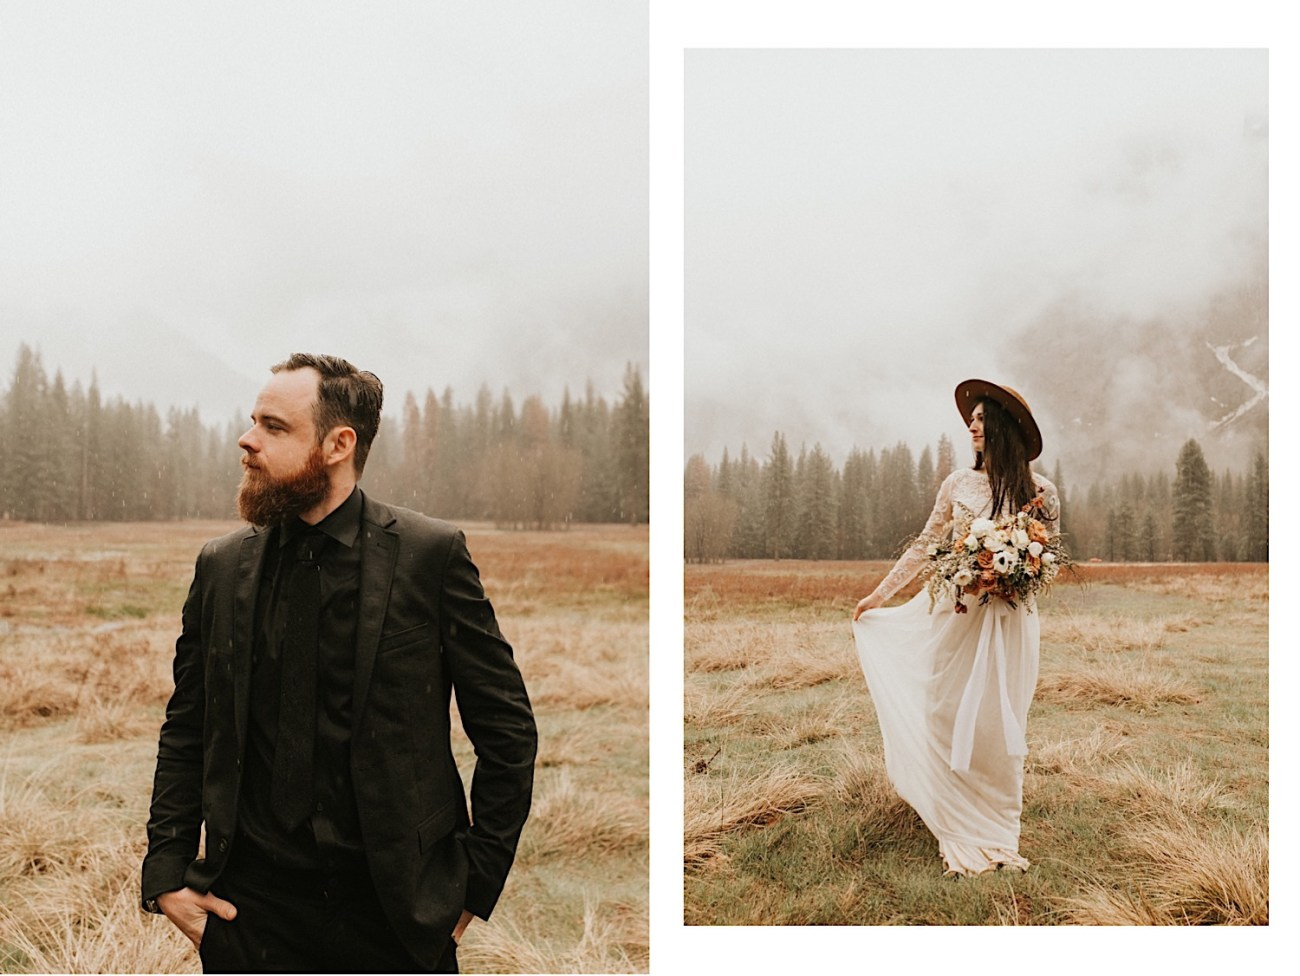 Reasons Why You Should Elope Top Reasons To Elope Elopement Photographer Yosemite National Park Elopement 011